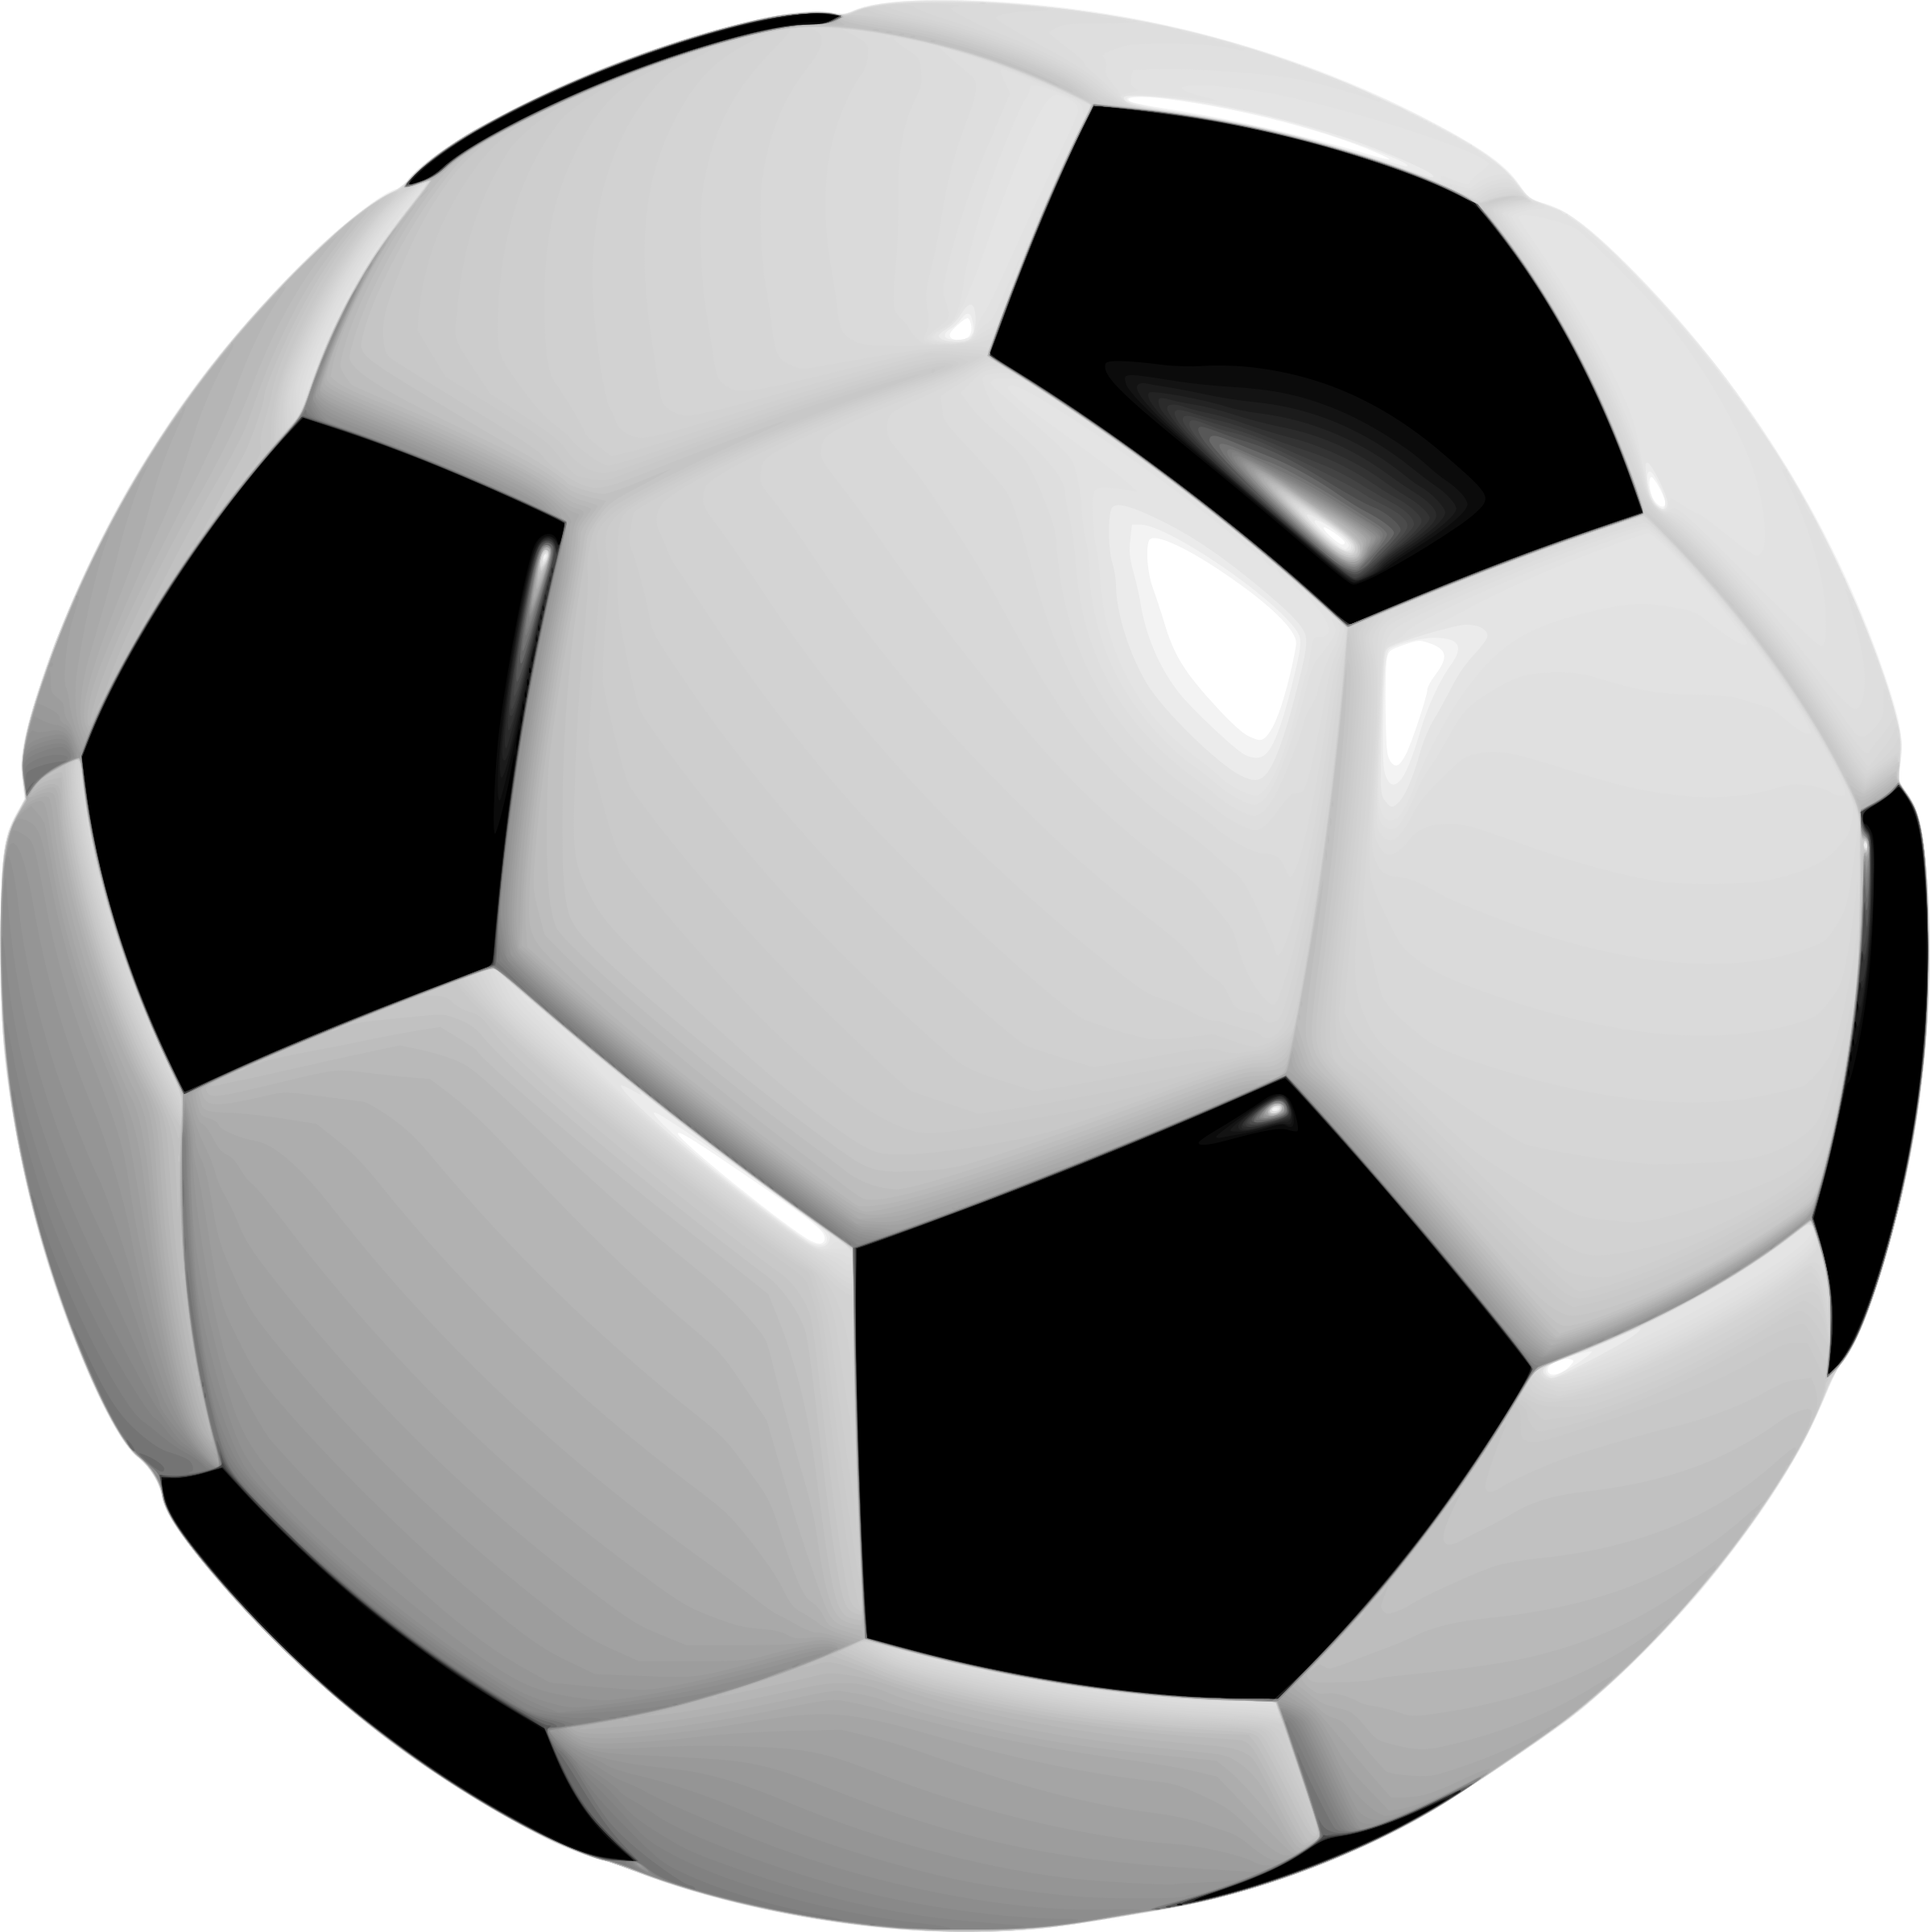 Overview 2015 16 winter rec futsal active fredericton - Ball image download ...